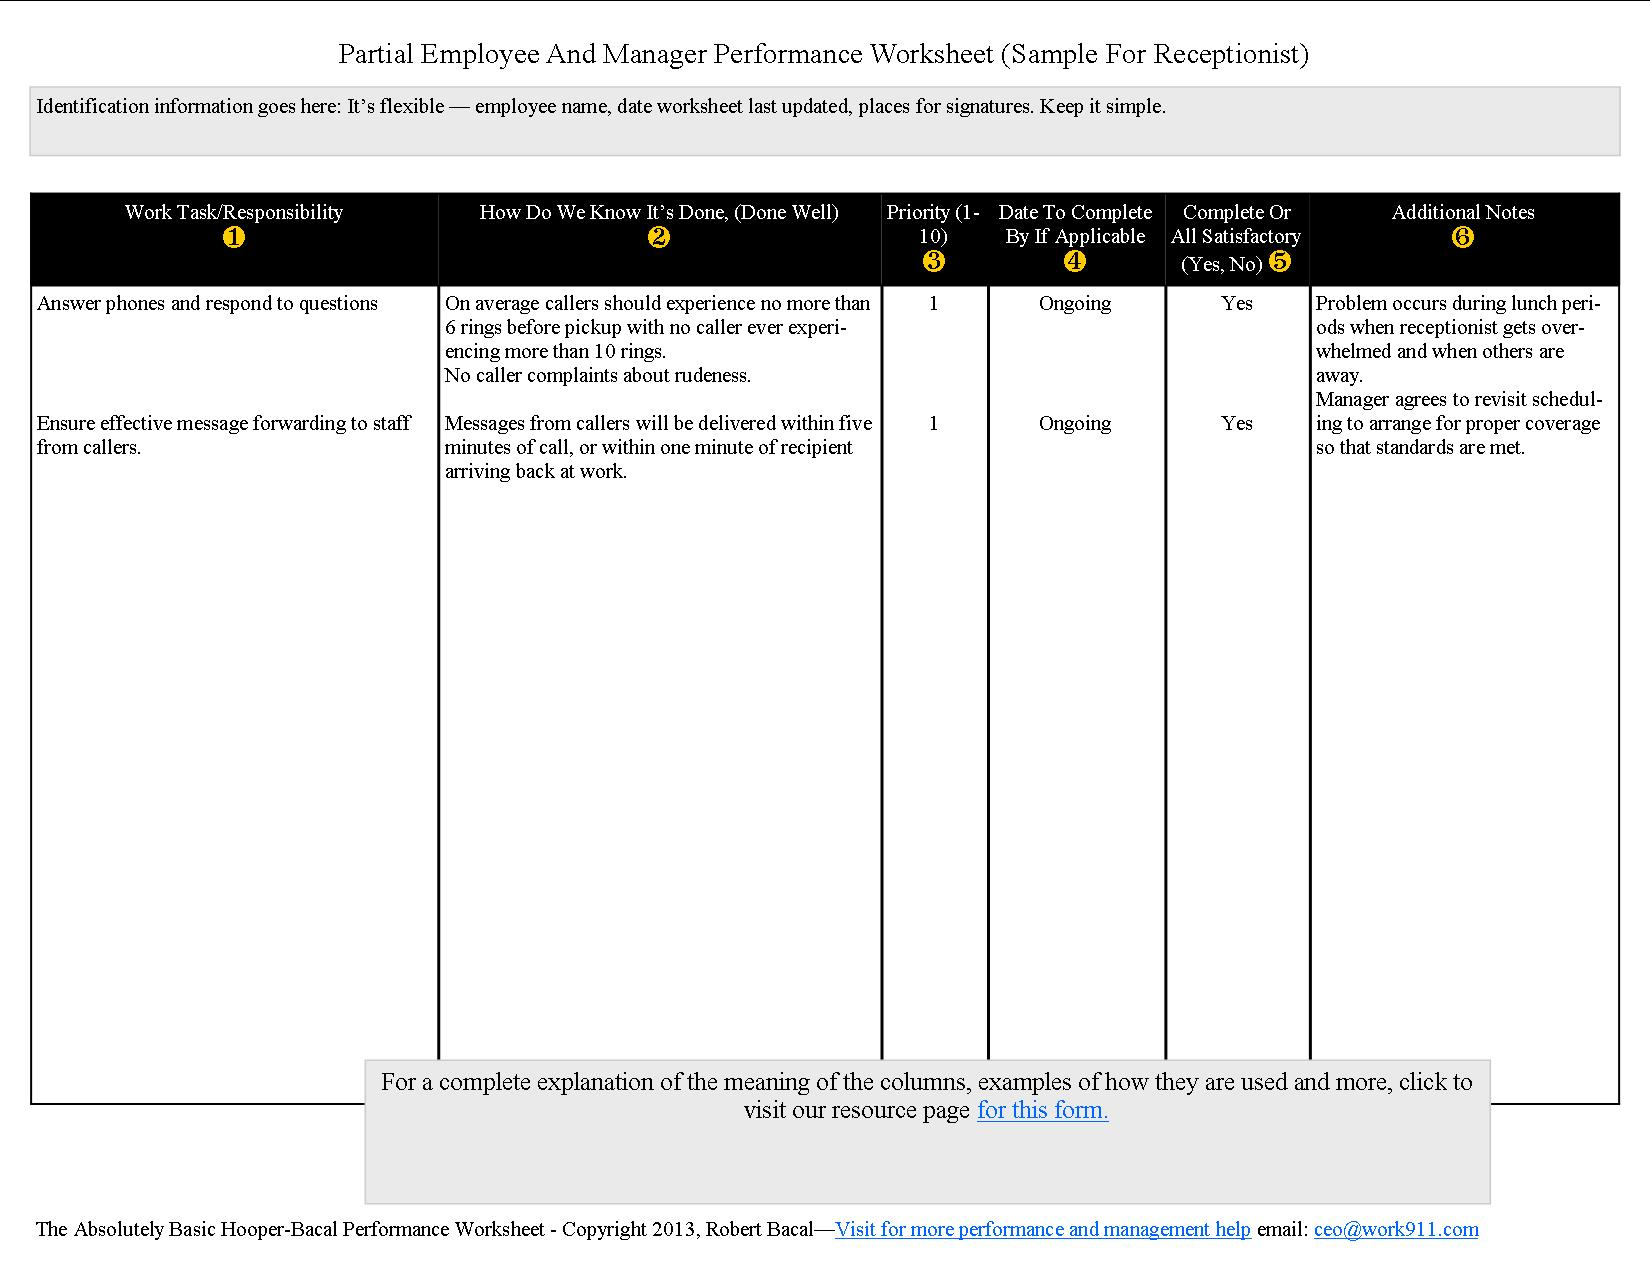 Sample Performance Worksheet For A Receptionist – Performance Review Format